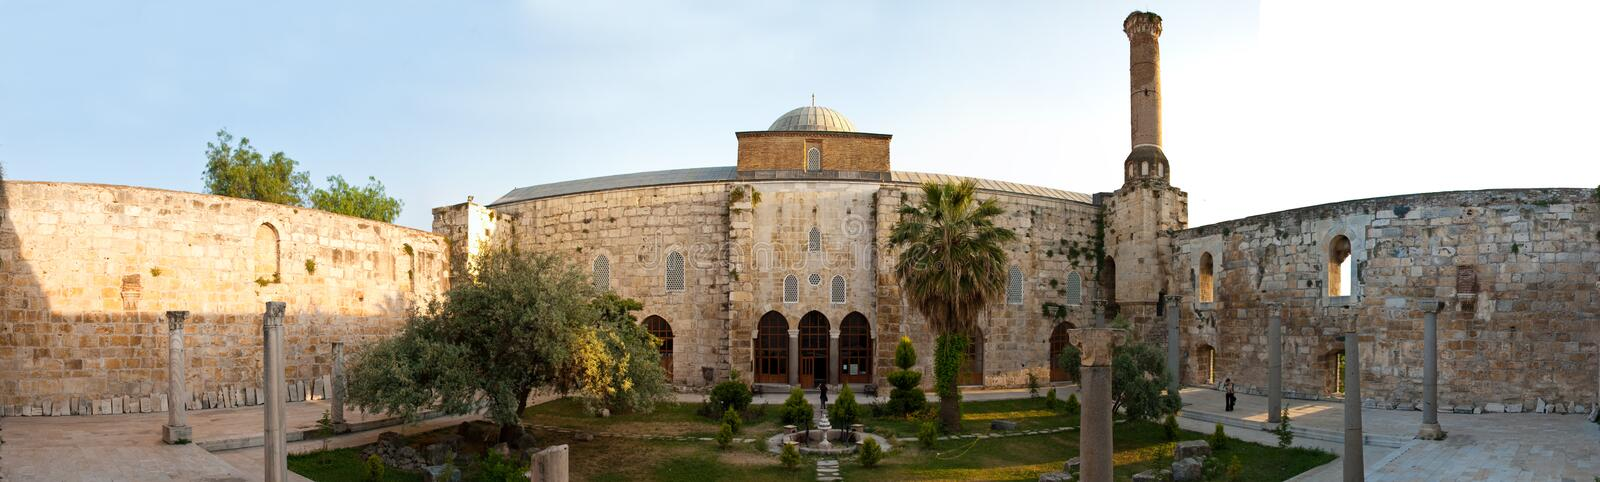 Download Isa Bey Mosque in Selcuk stock image. Image of minor - 21424407